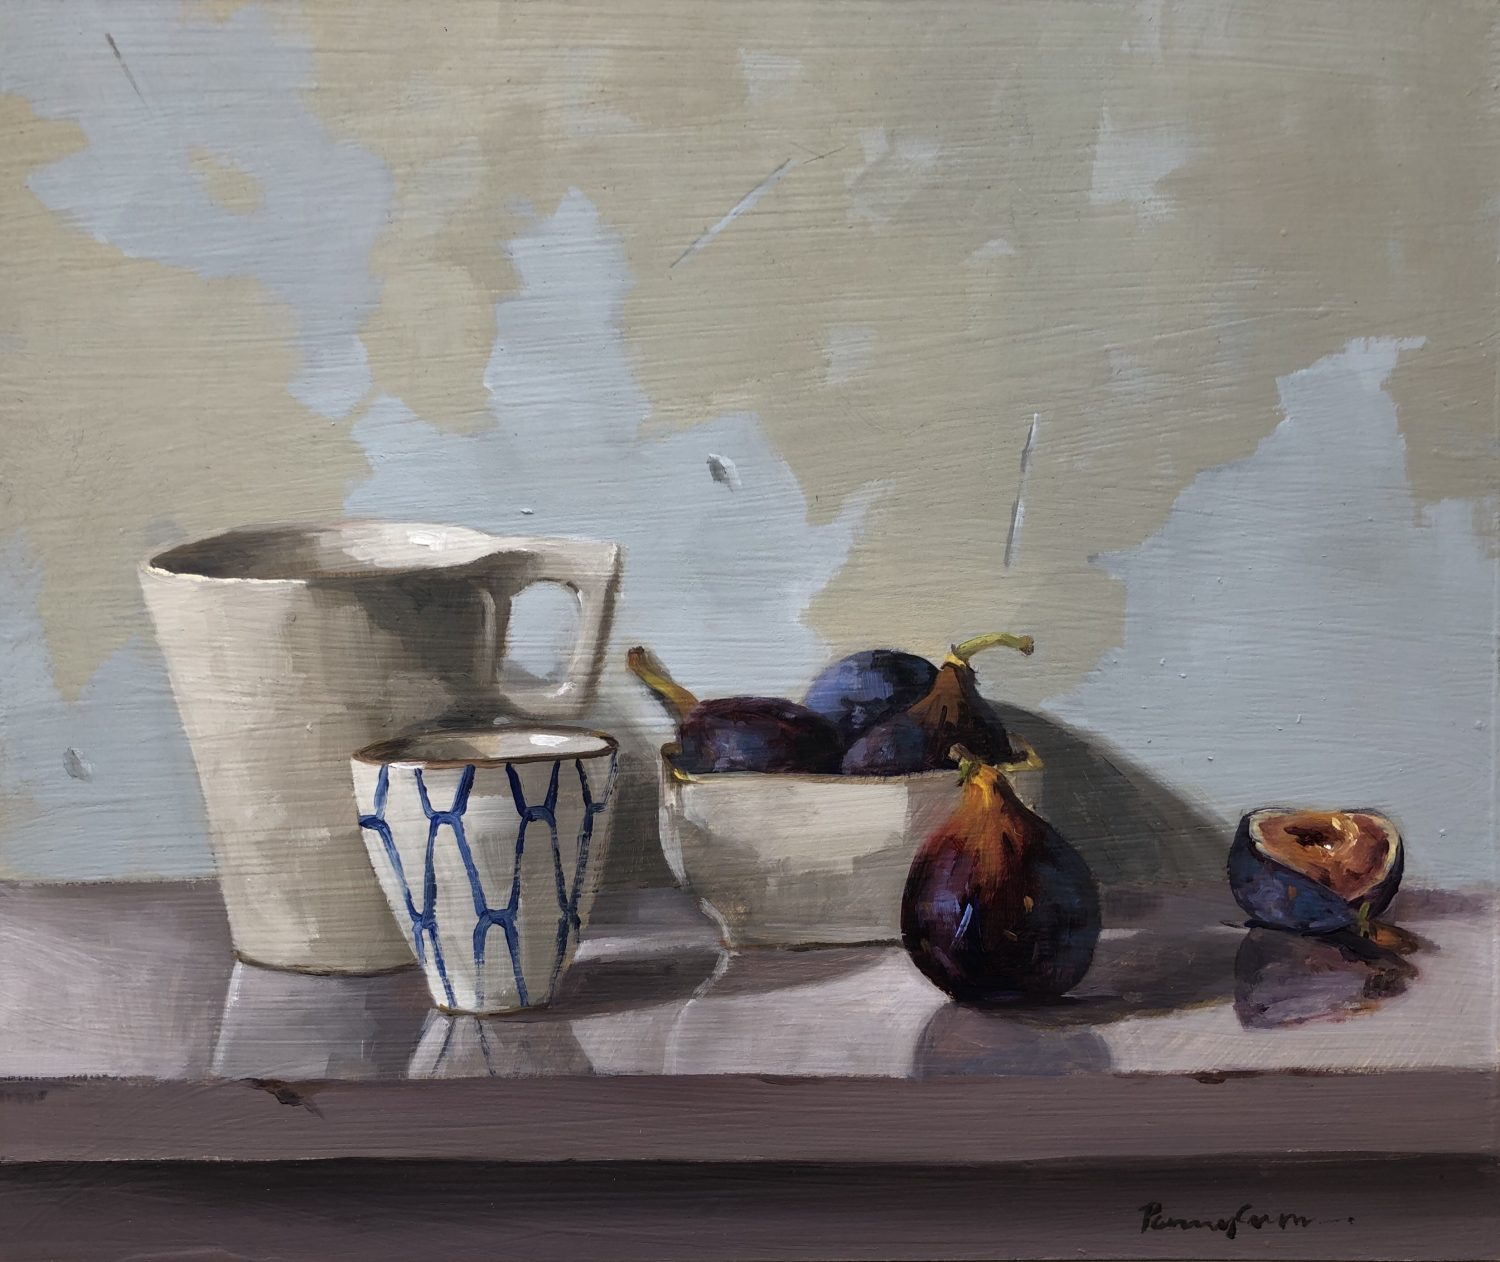 Figs and Small Pots by Penny German